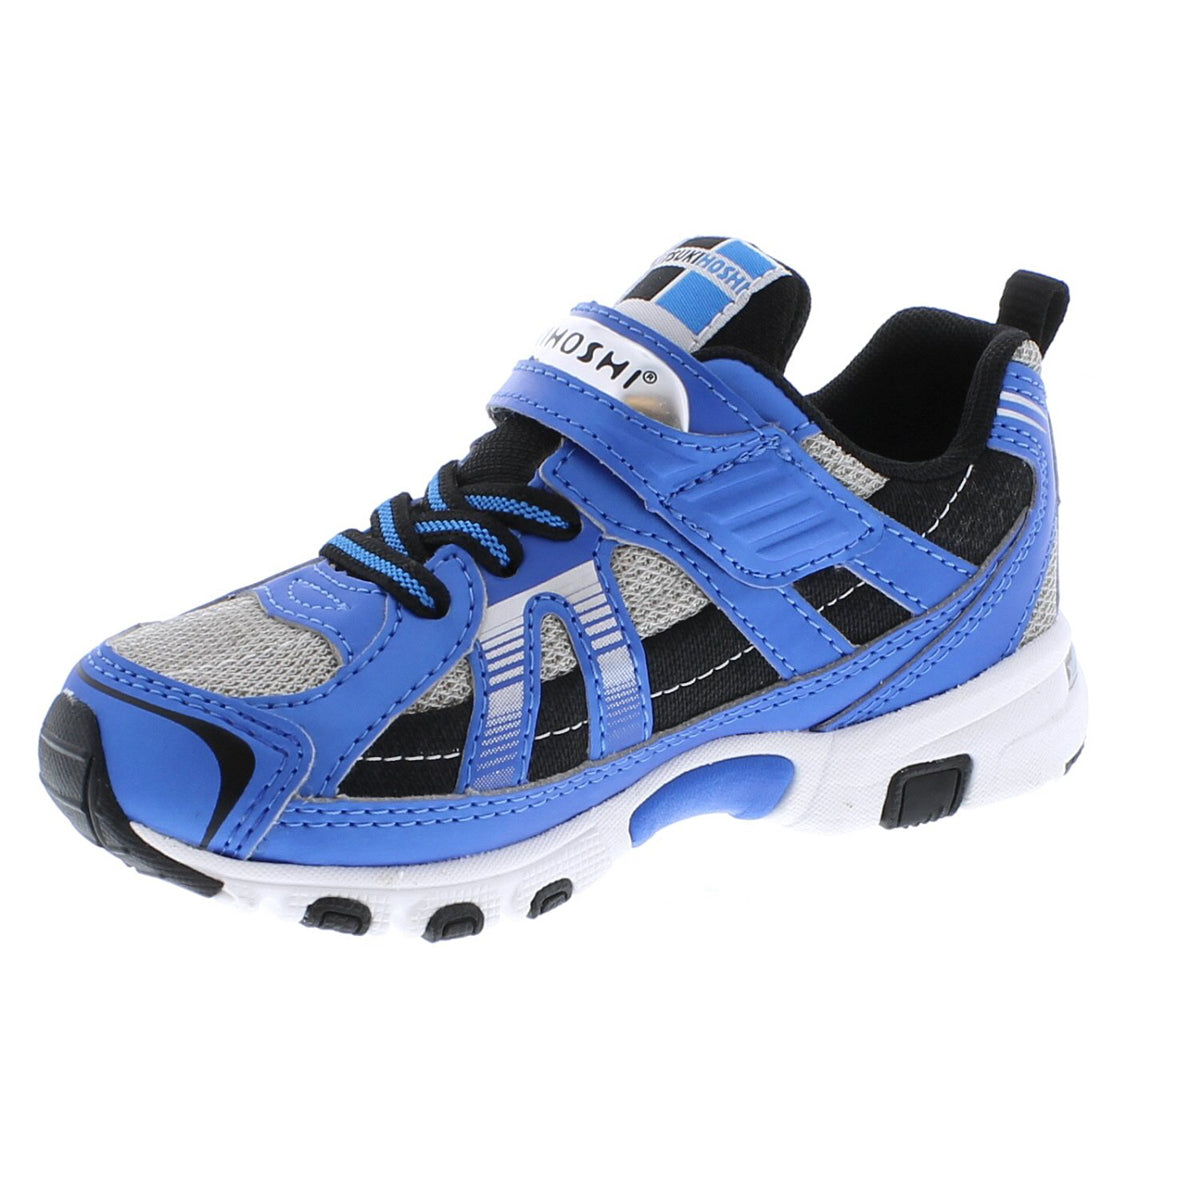 Childrens Tsukihoshi Storm Sneaker in Blue/Gray from the front view